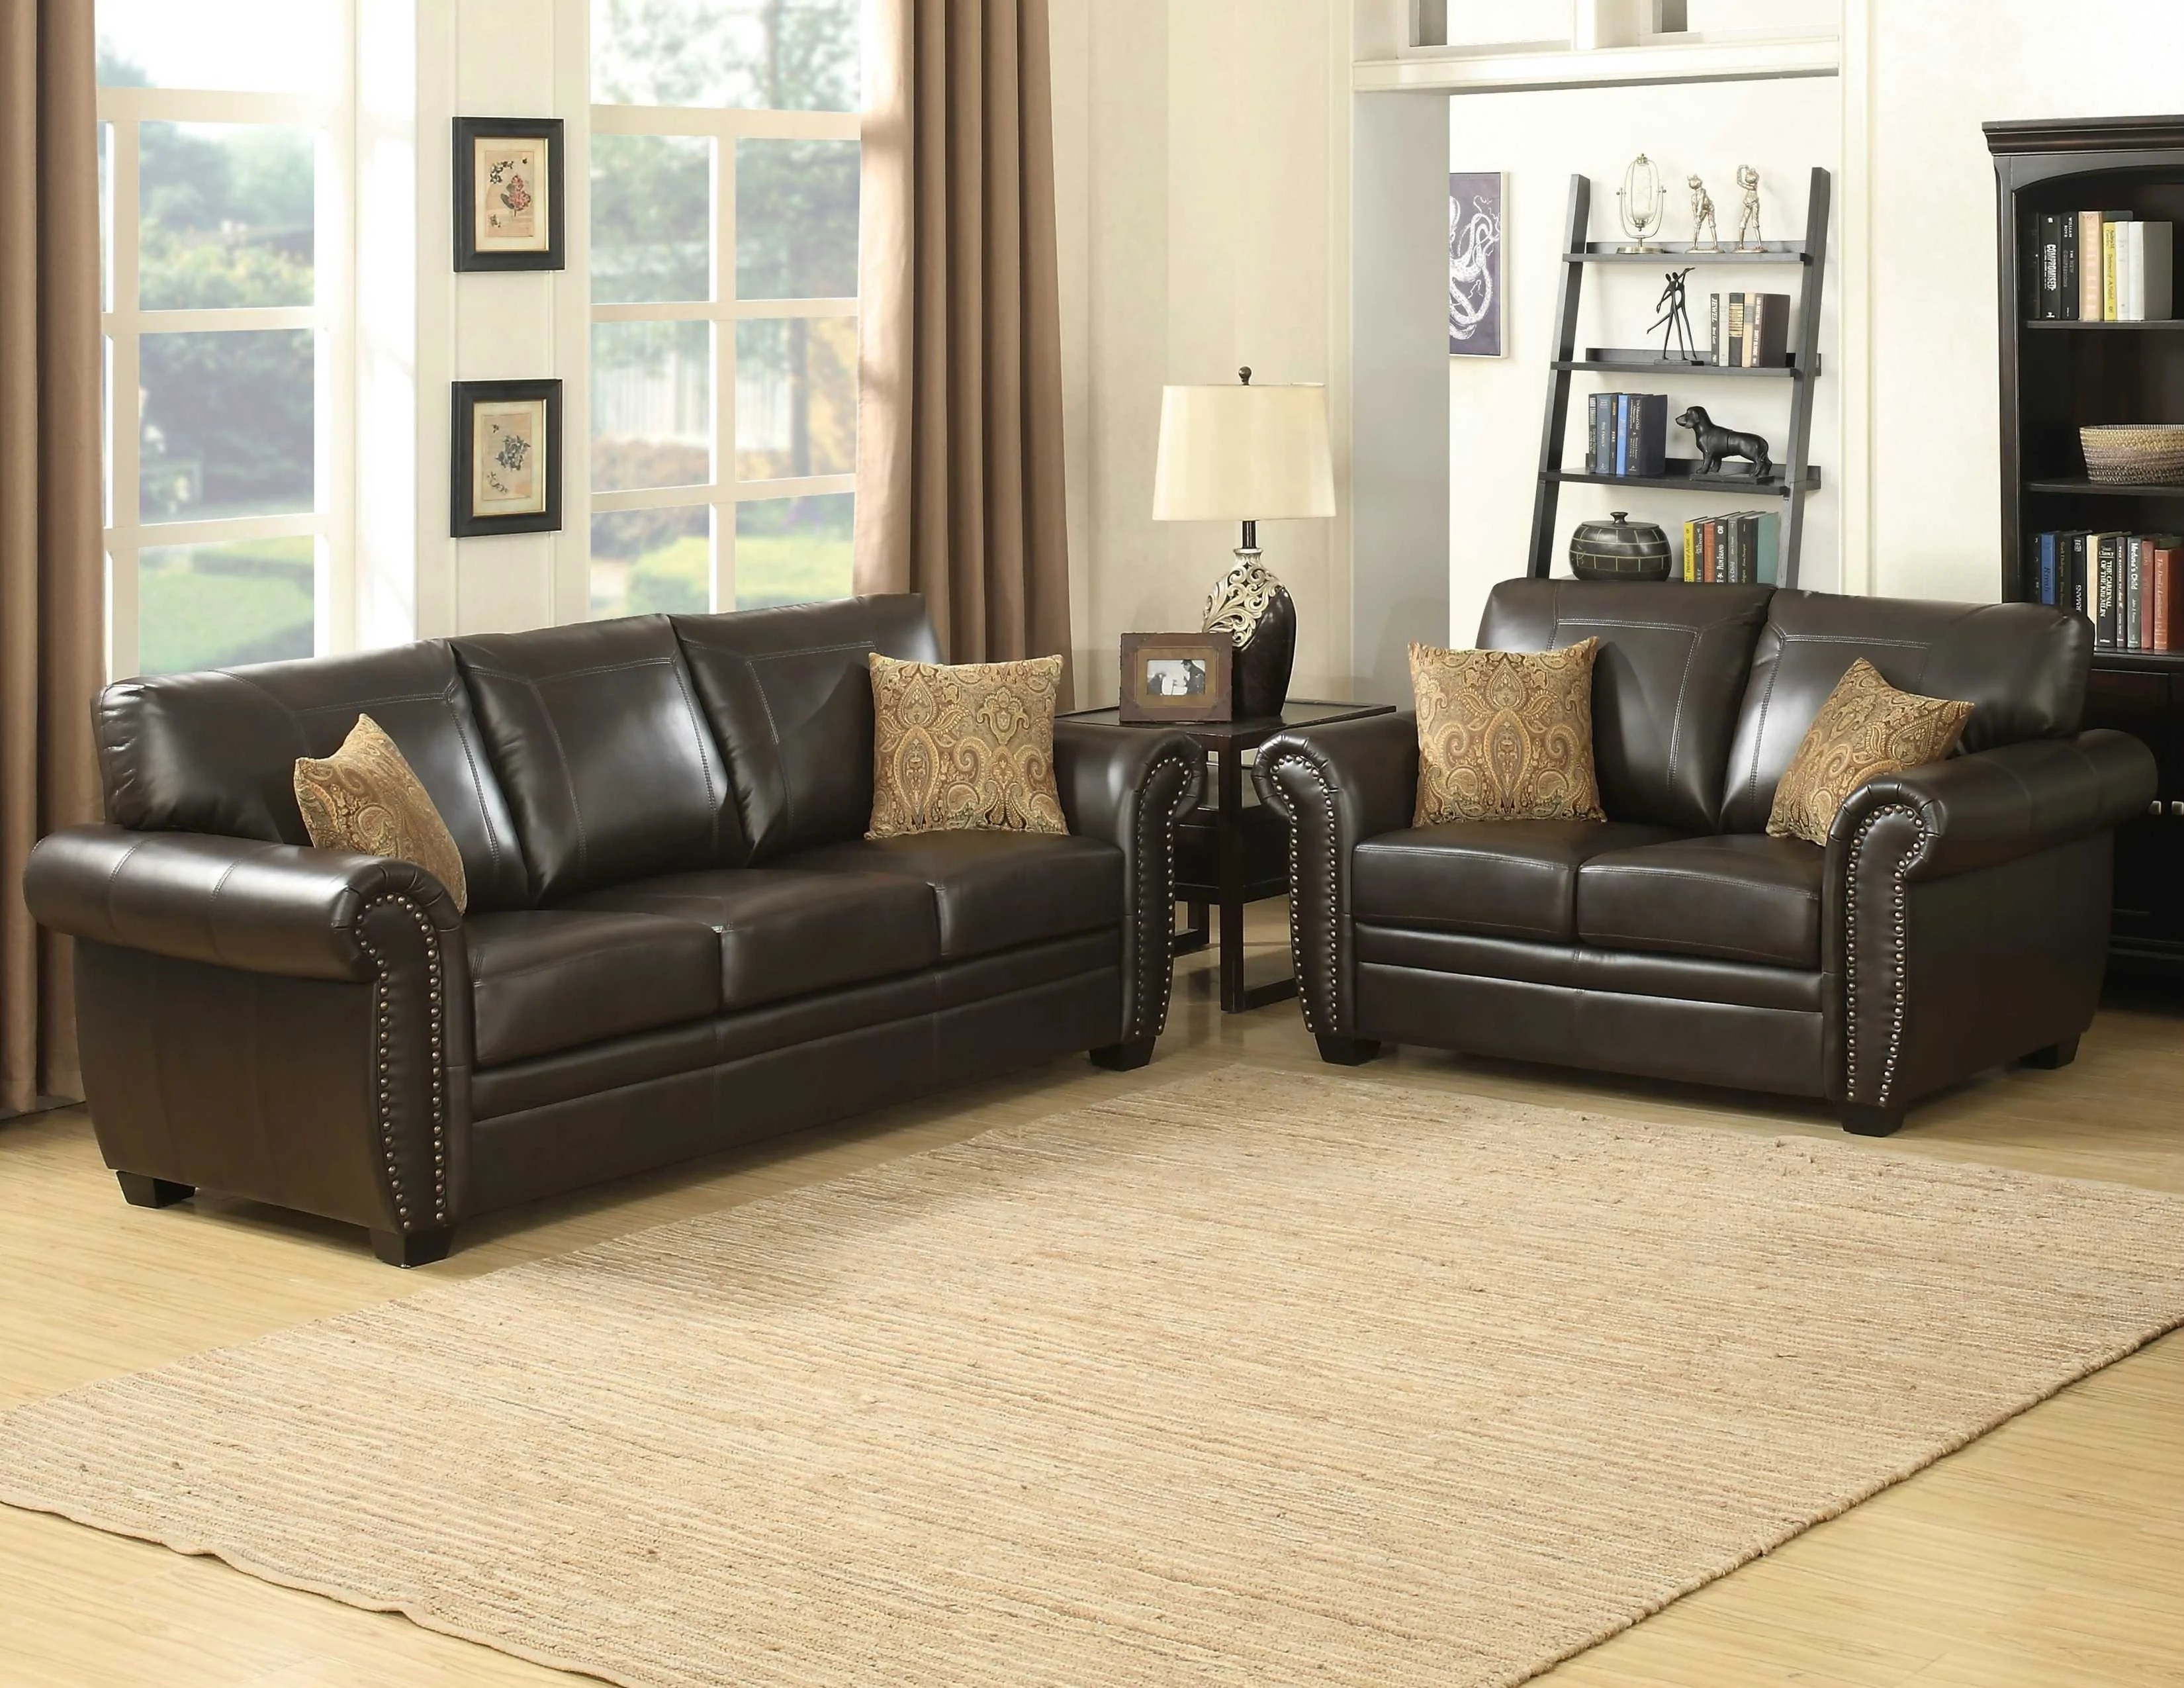 ryker reclining sofa and loveseat 2 piece set 66 rv shop for living room sets at homegazers 3 stationary bill contemporary brown